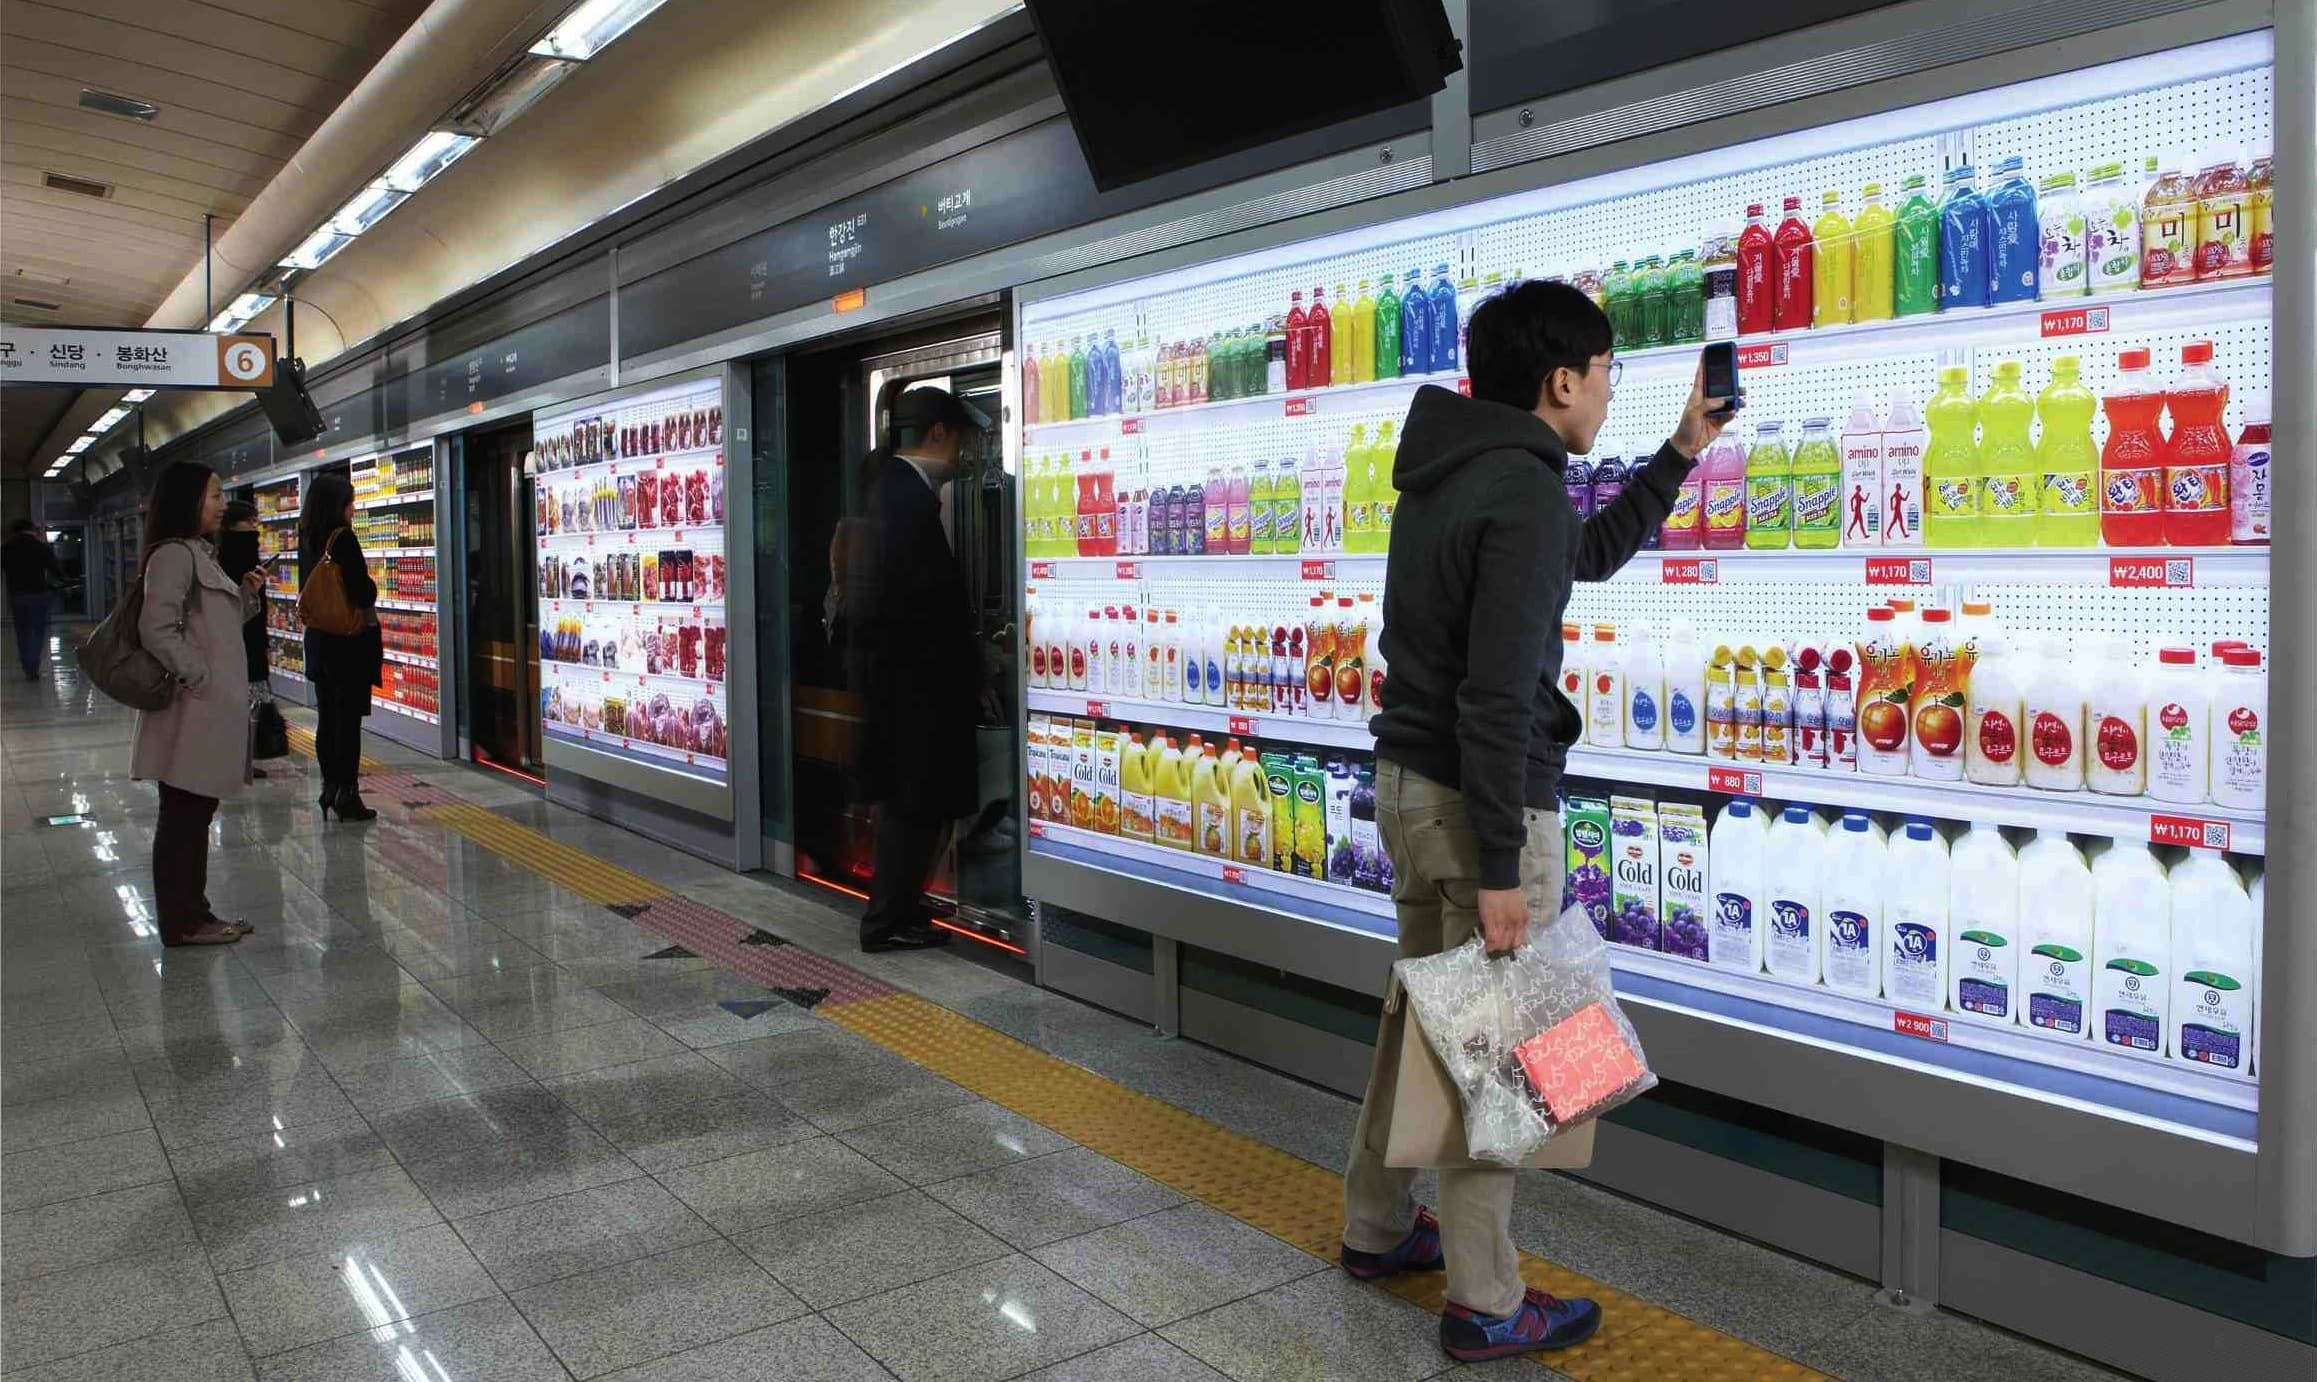 Tesco Homeplus Subway Virtual Store in South Korea